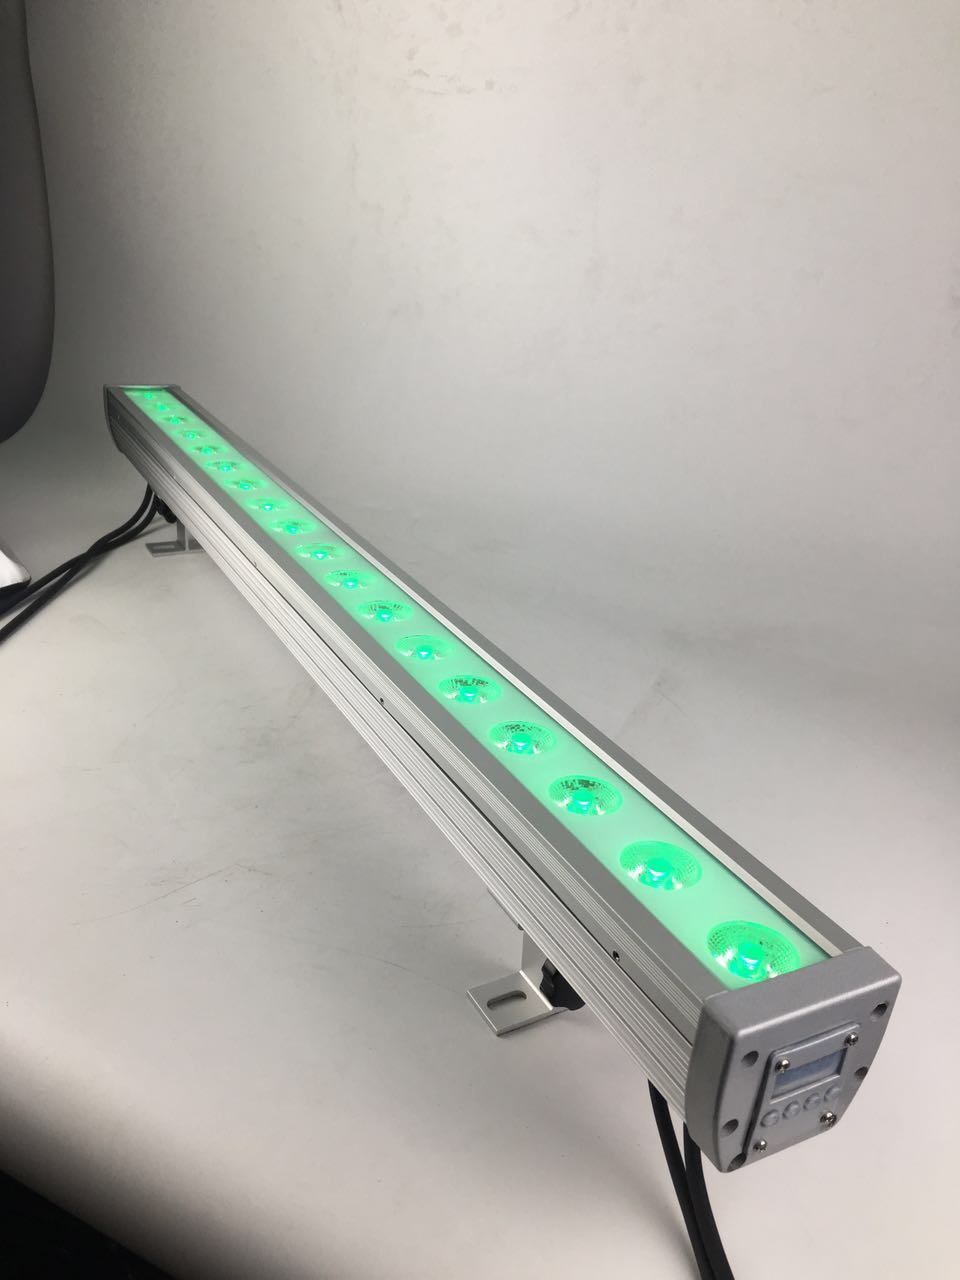 18x3w led wall washer-4